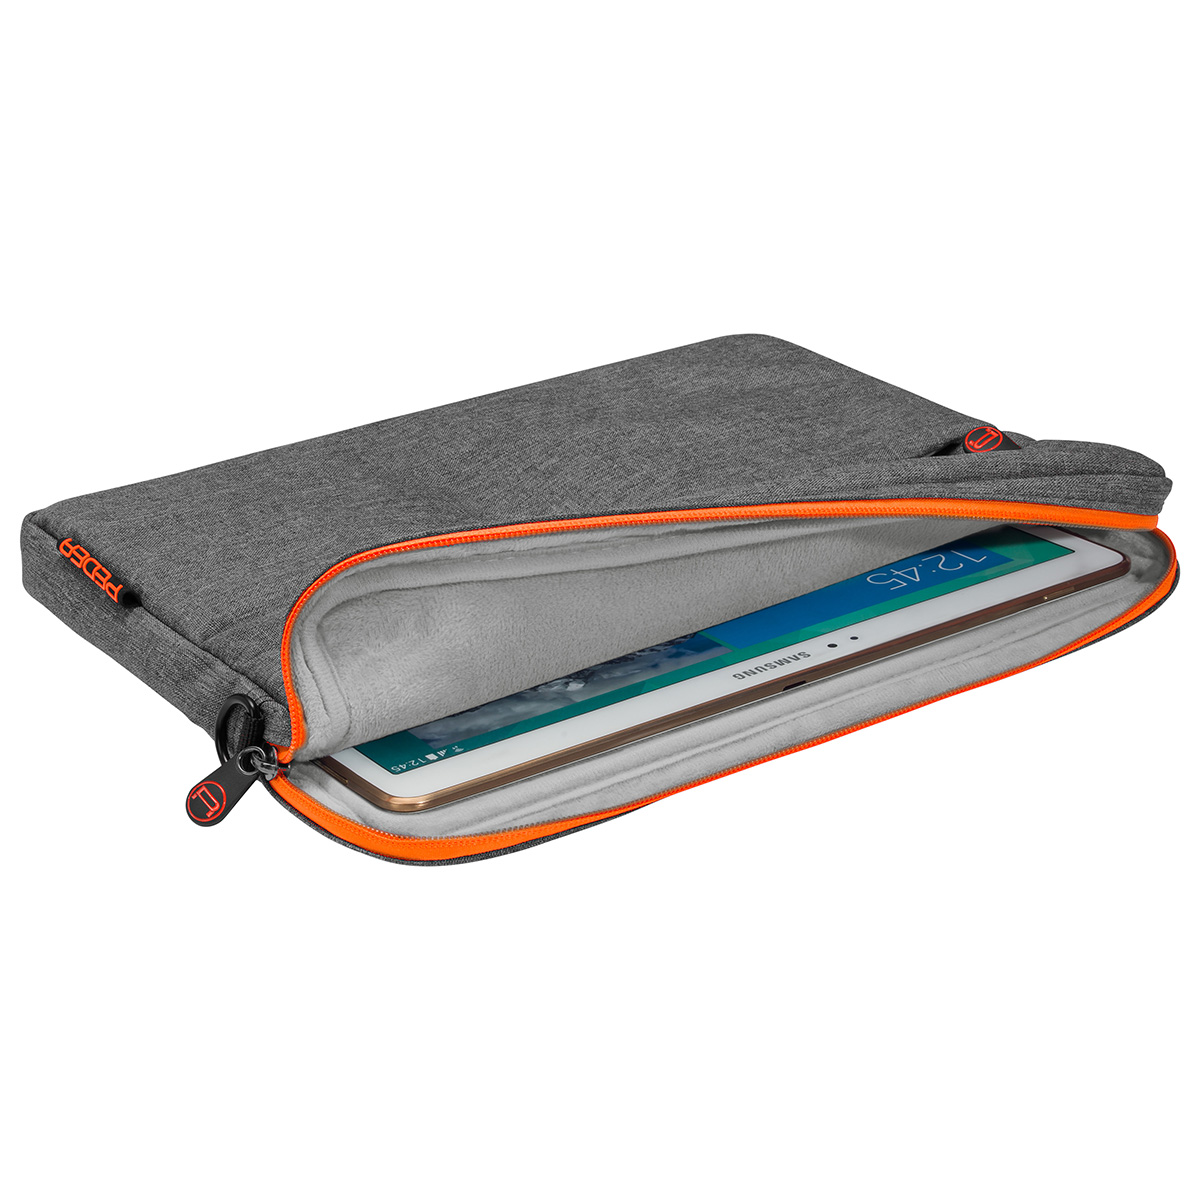 "Tablet-Tasche ""Fashion"" 12,9"" (32,8cm) grau/orange"